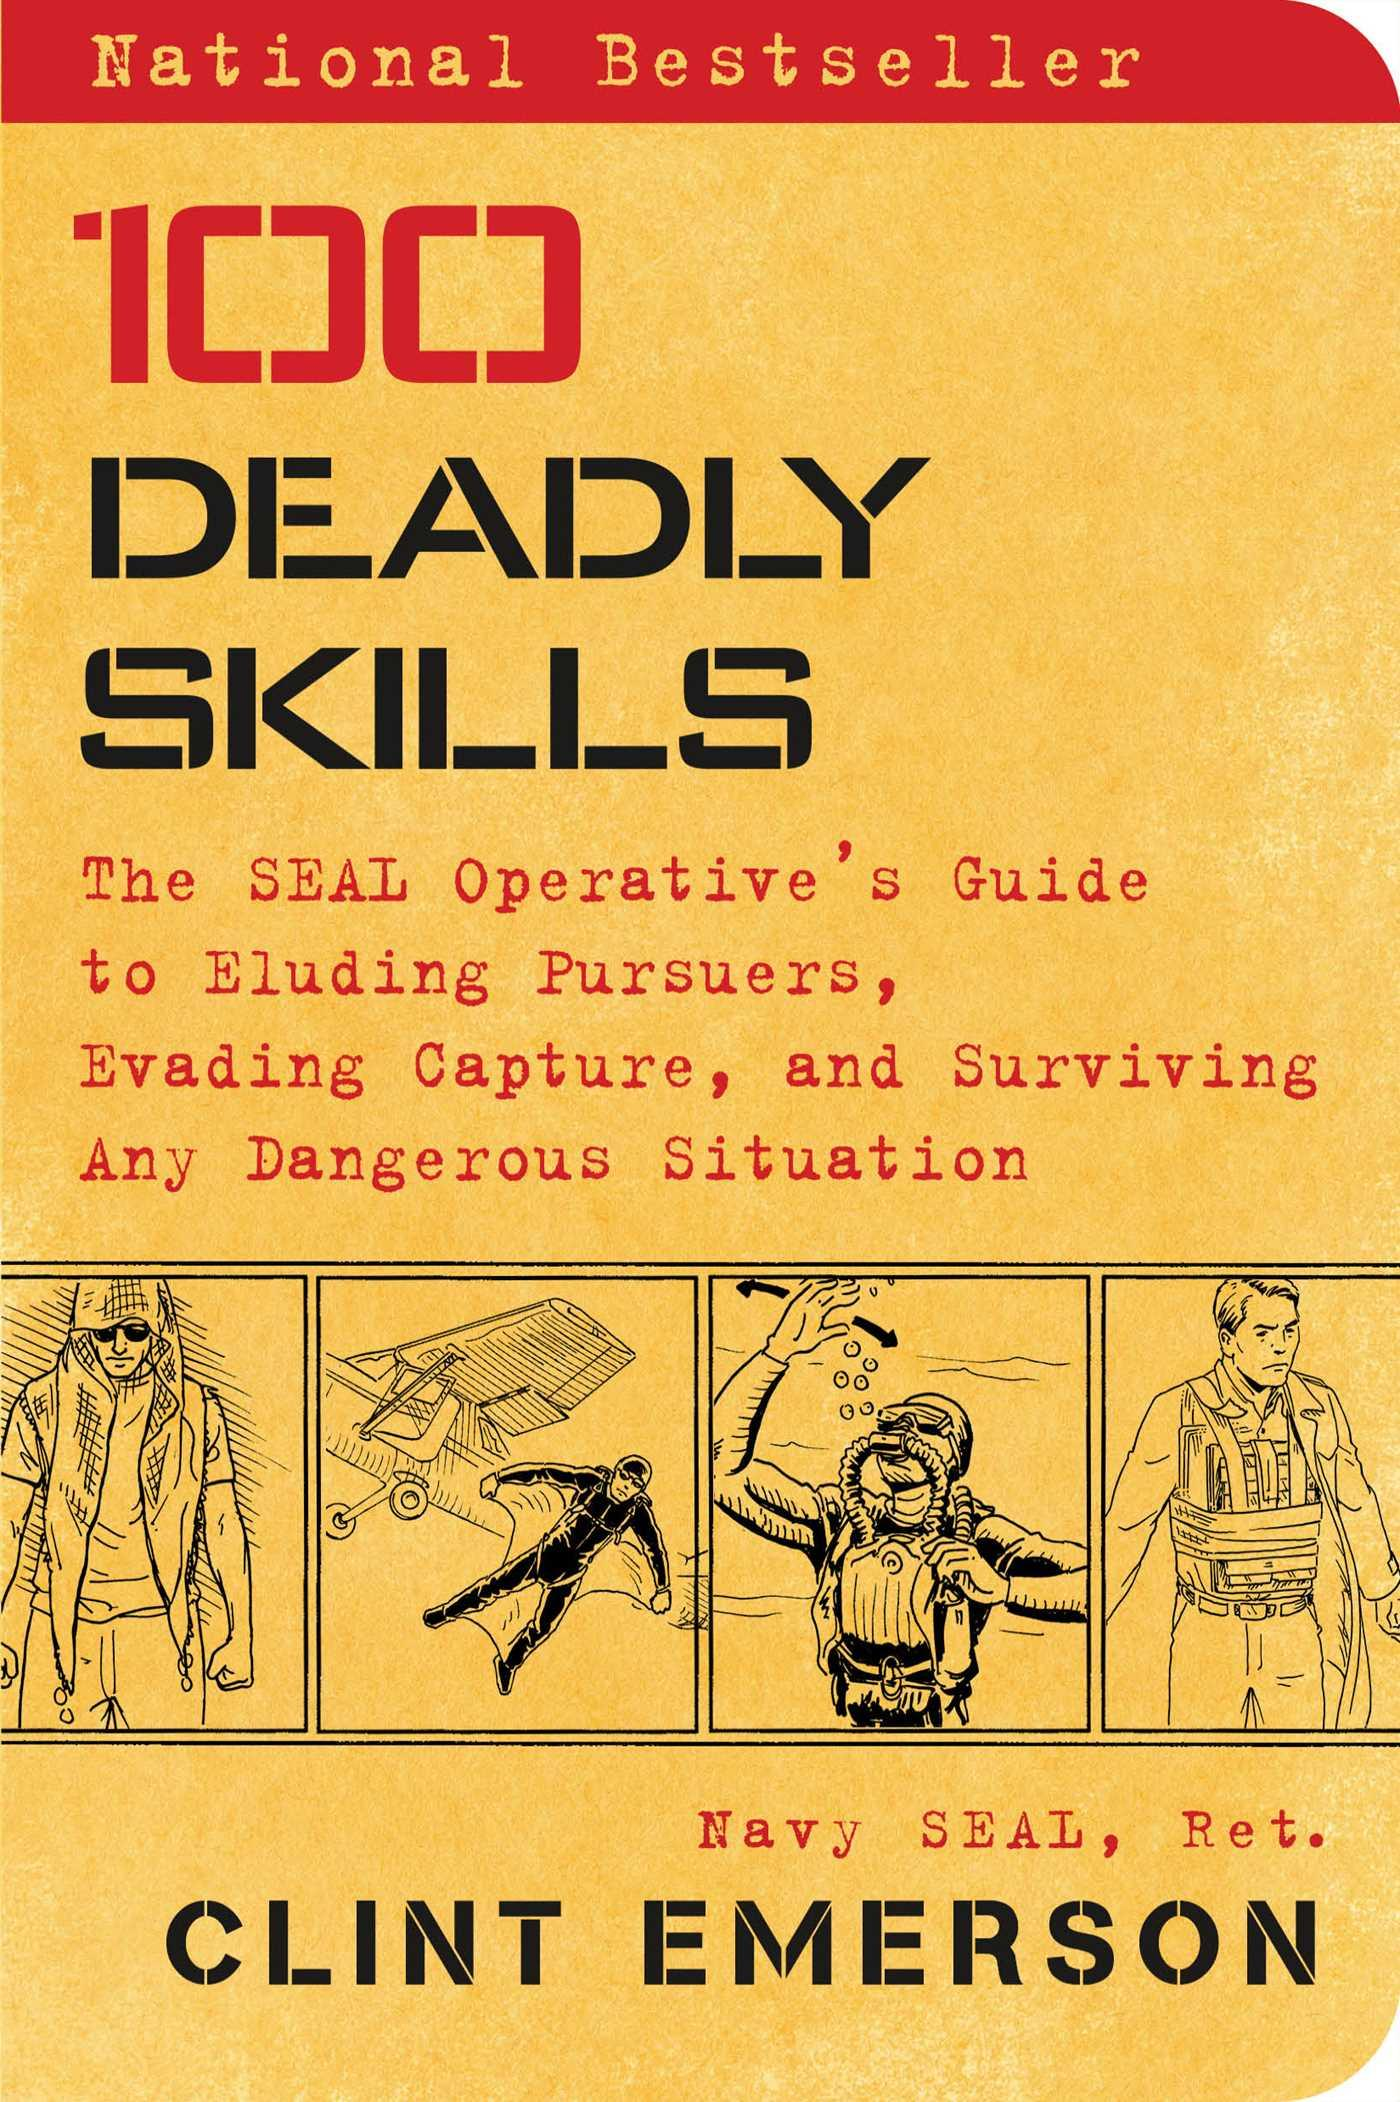 OFF 100 Deadly Skills